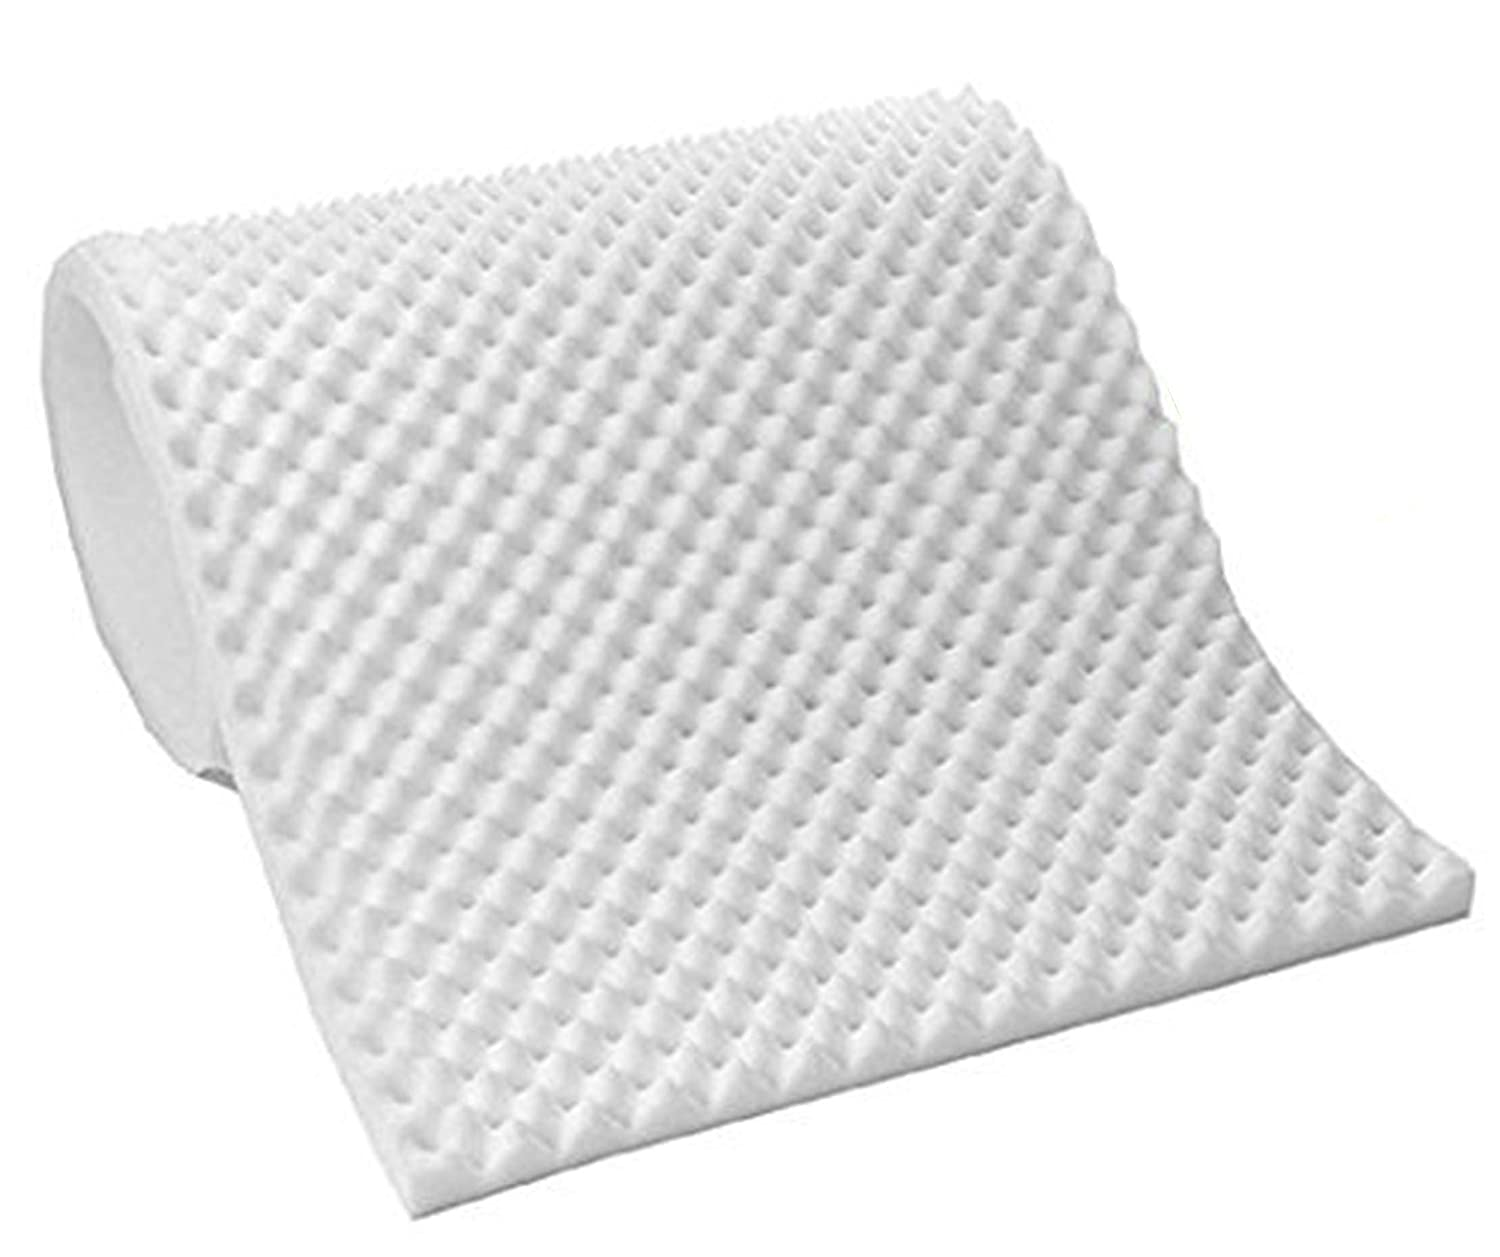 Vaunn Medical Premium White Egg Crate Convoluted Foam Mattress Pad Topper Hospital Bed Twin Size